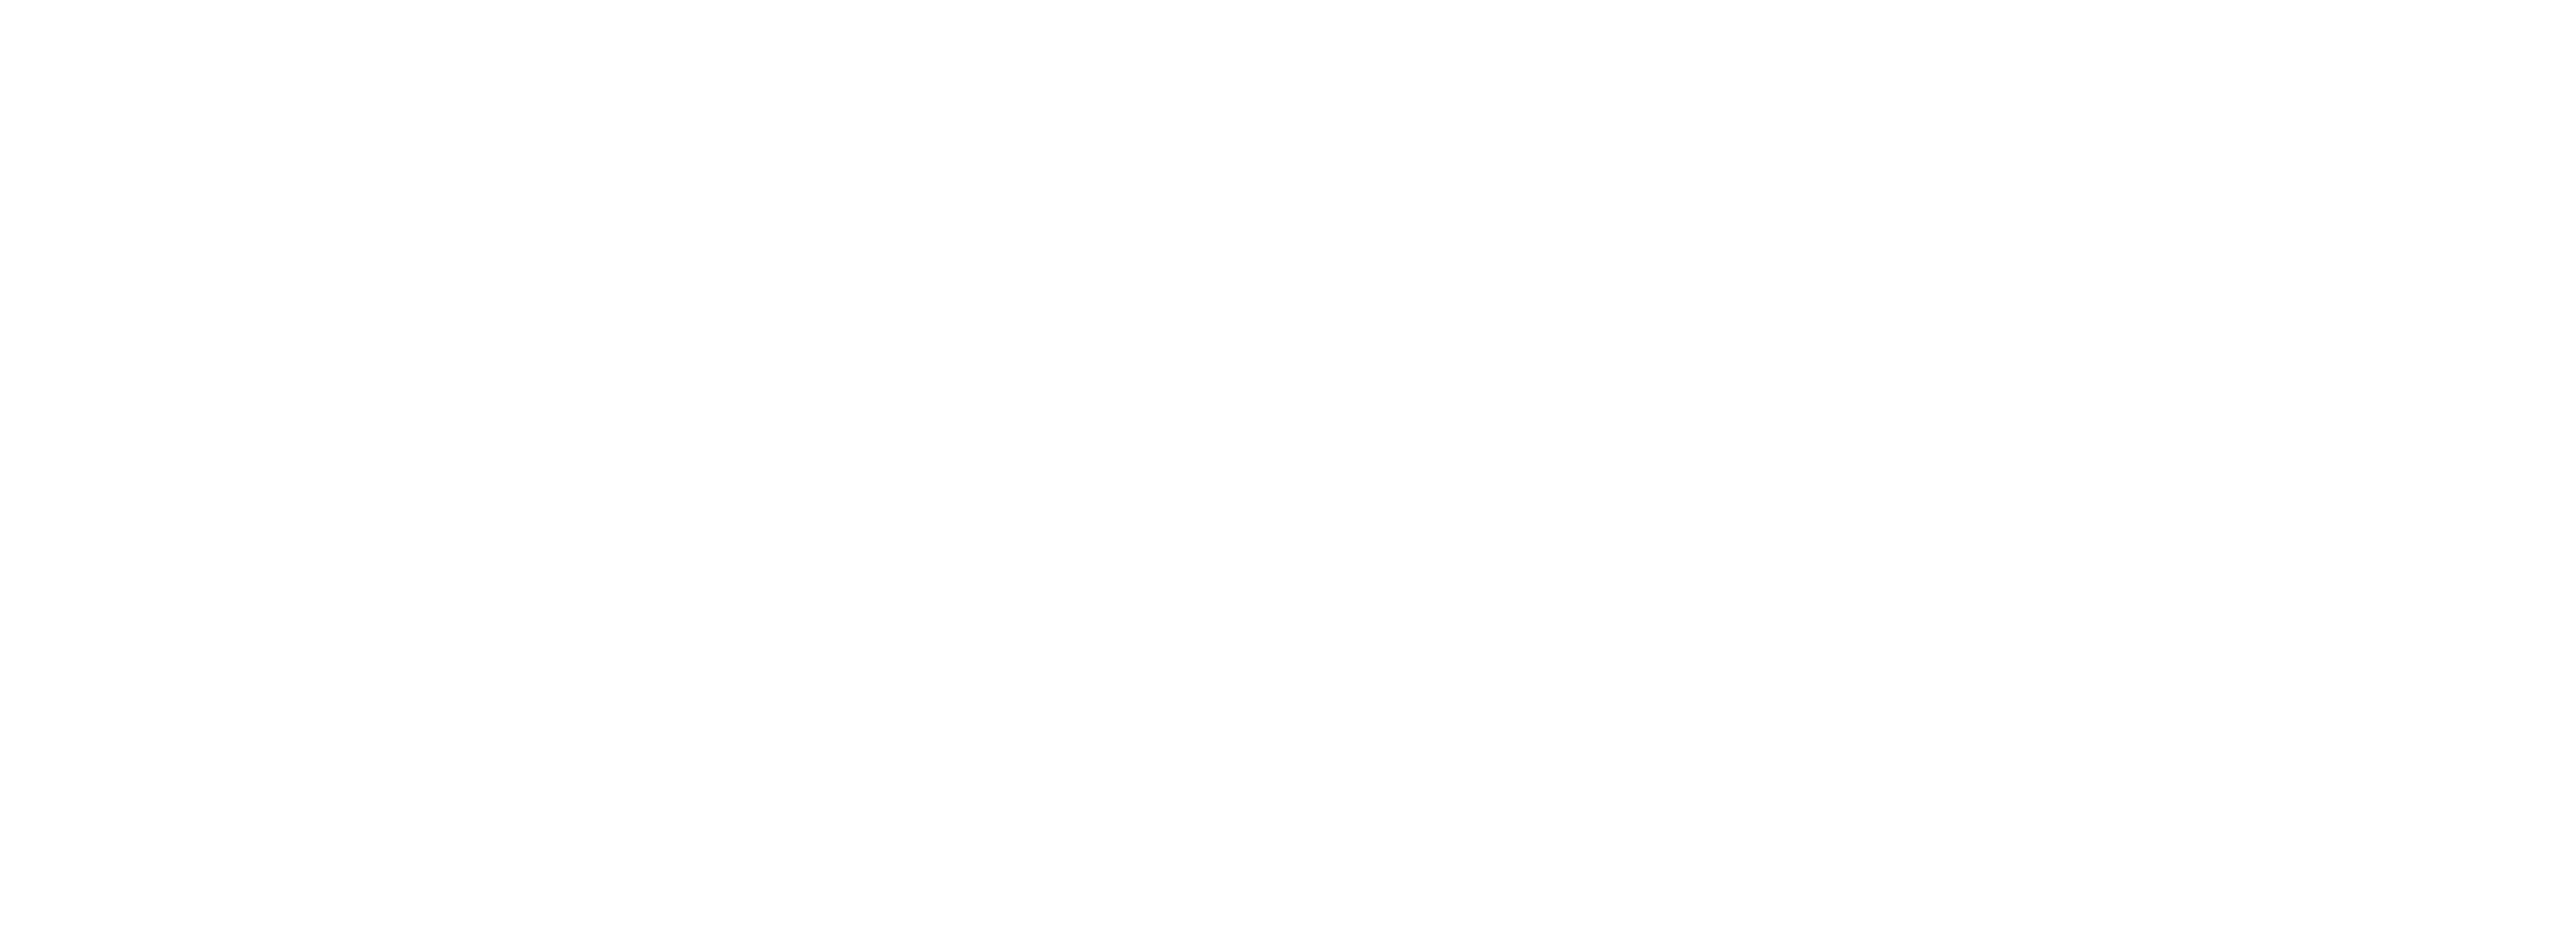 MELWA SOLUTIONS